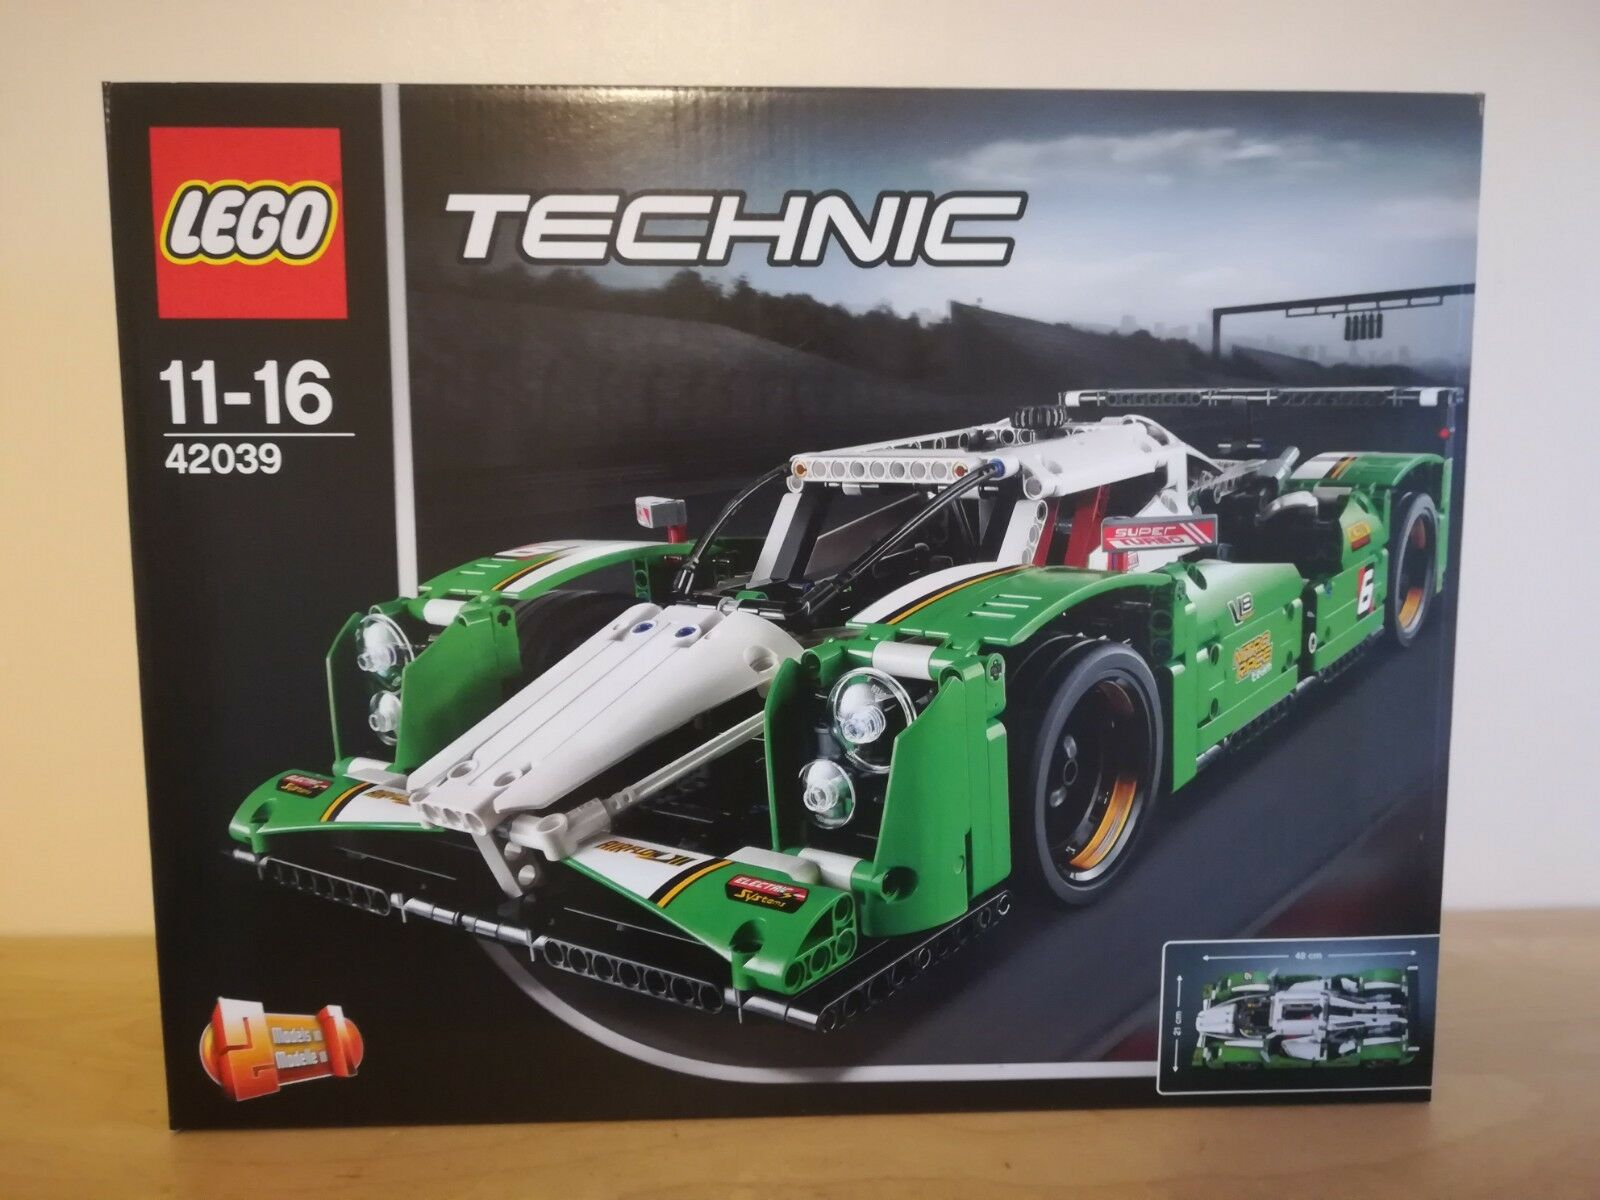 Lego Technic 42039 24 HOUR RACE CAR - Brand new sealed box